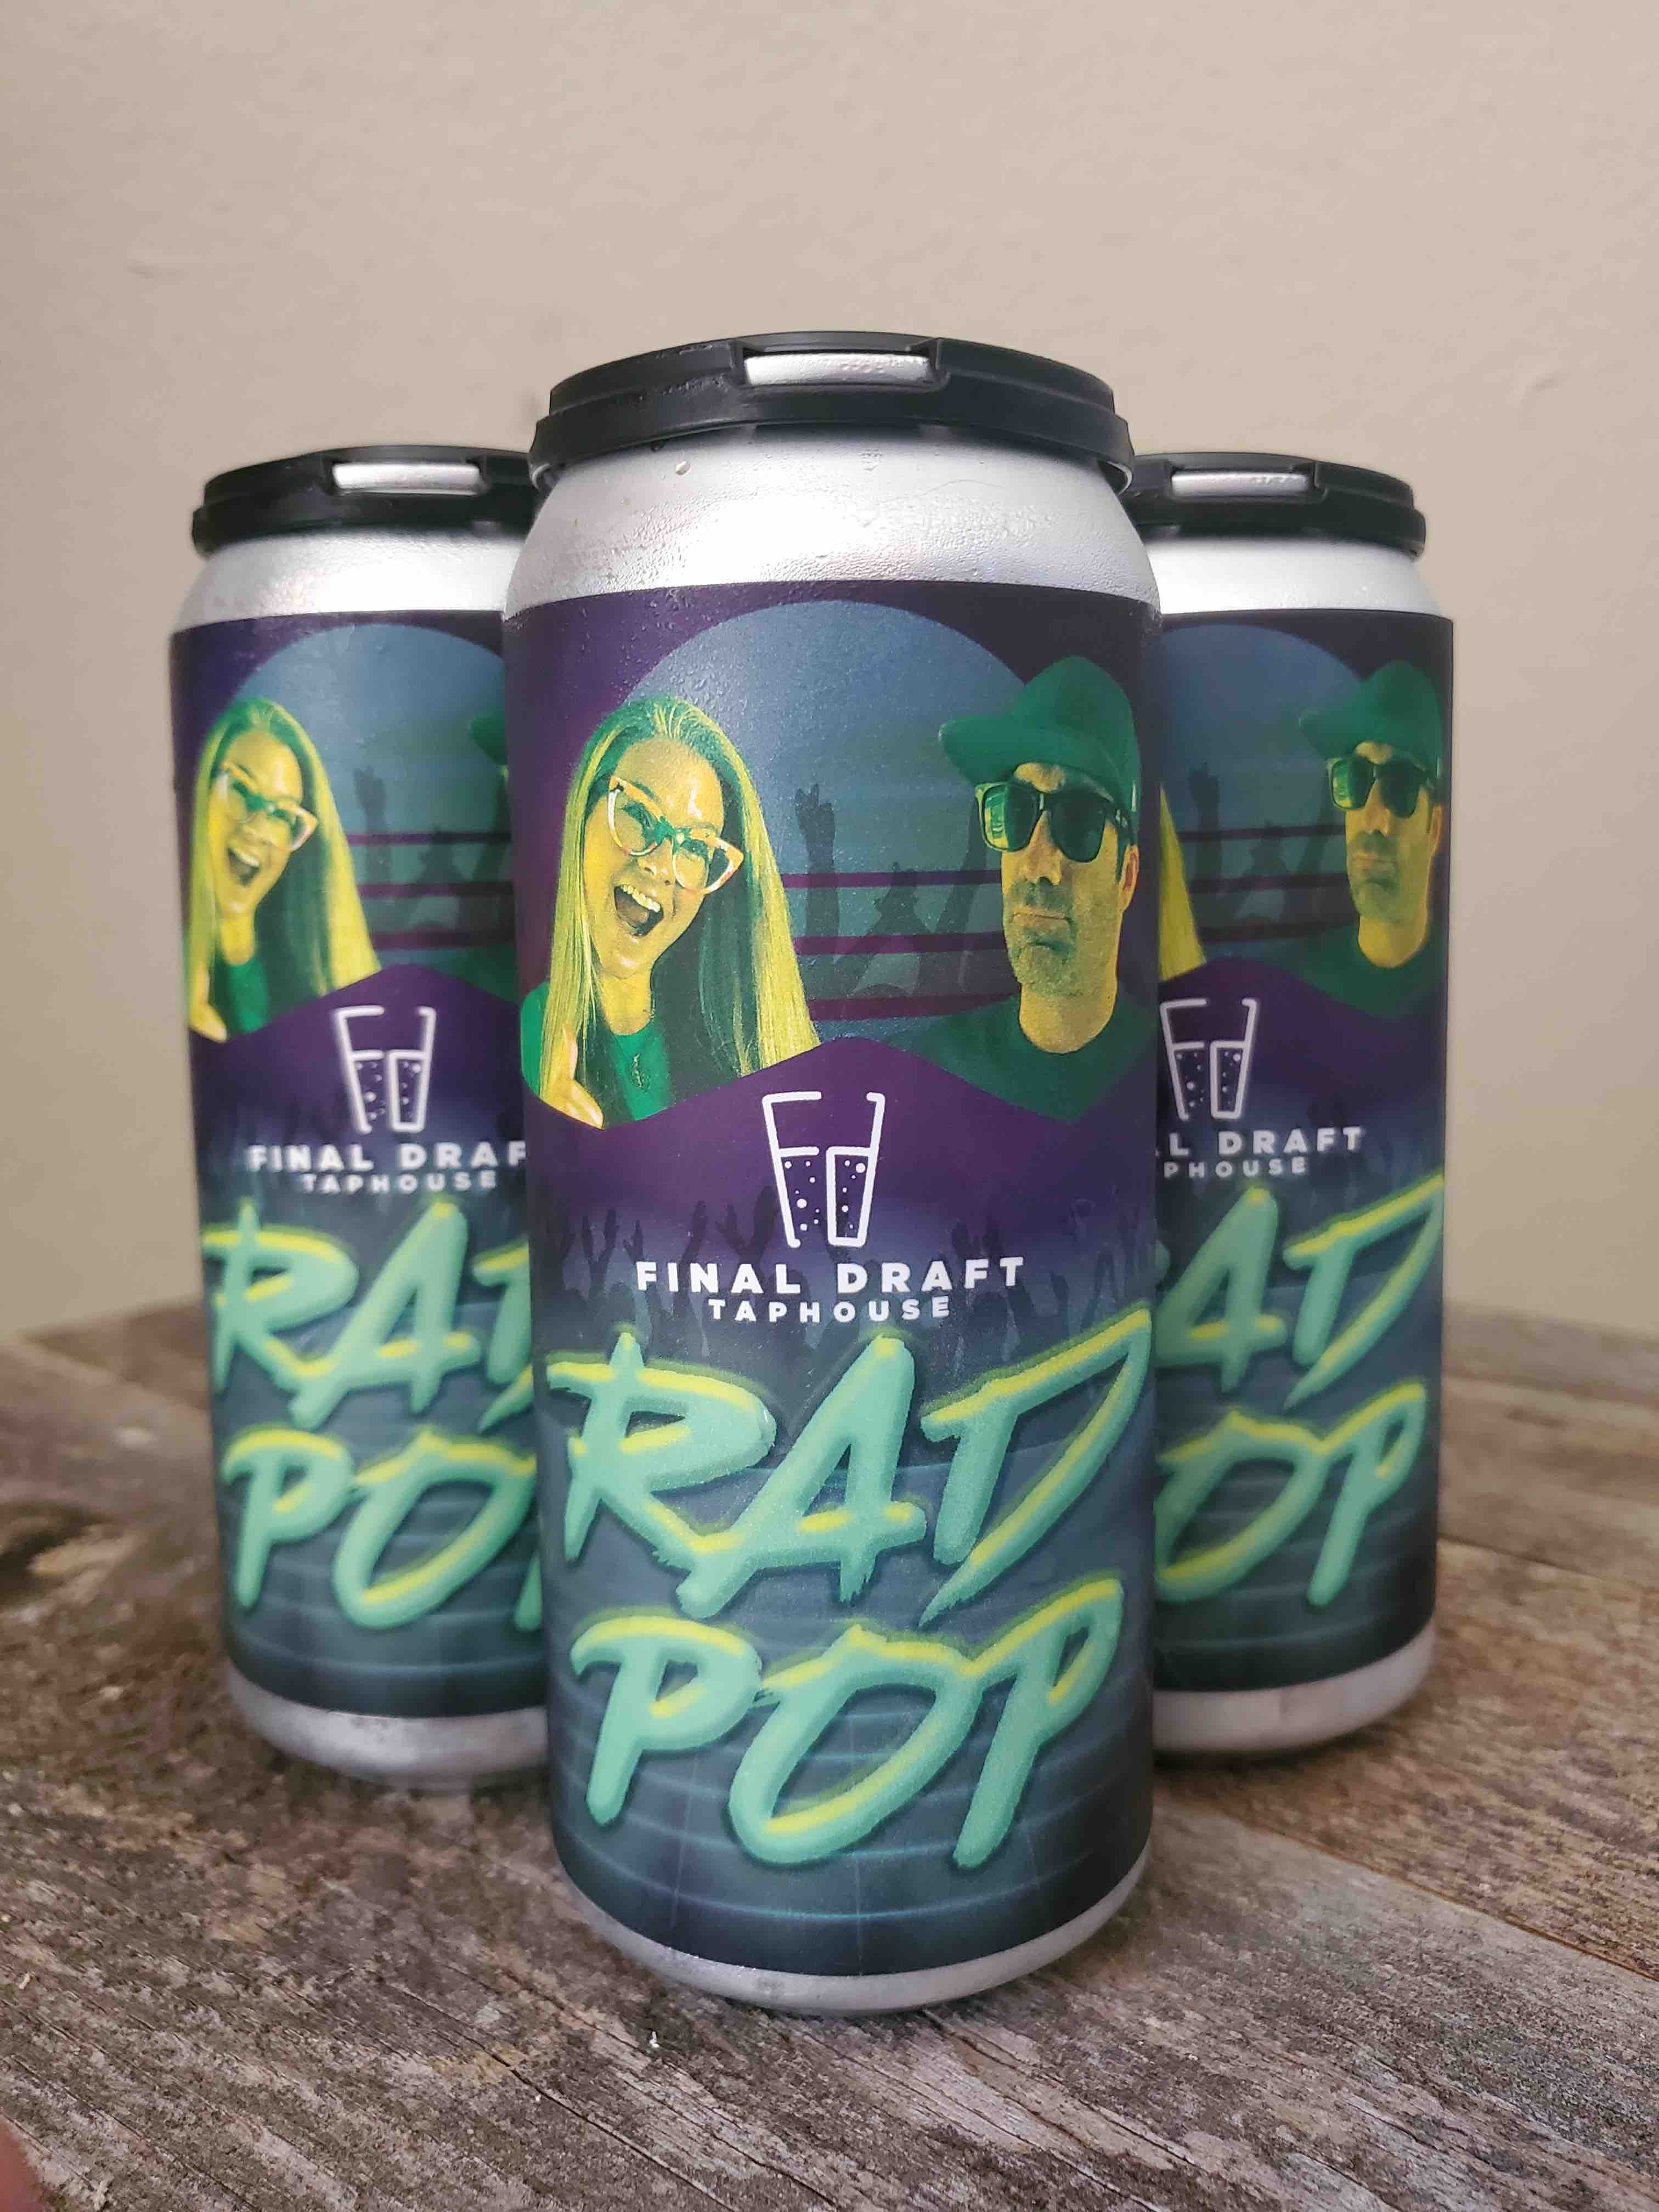 Rad Pop brewed by Brothers Cascadia for Final Draft Taphouse 4th Anniversary. (image courtesy of Final Draft Taphouse)